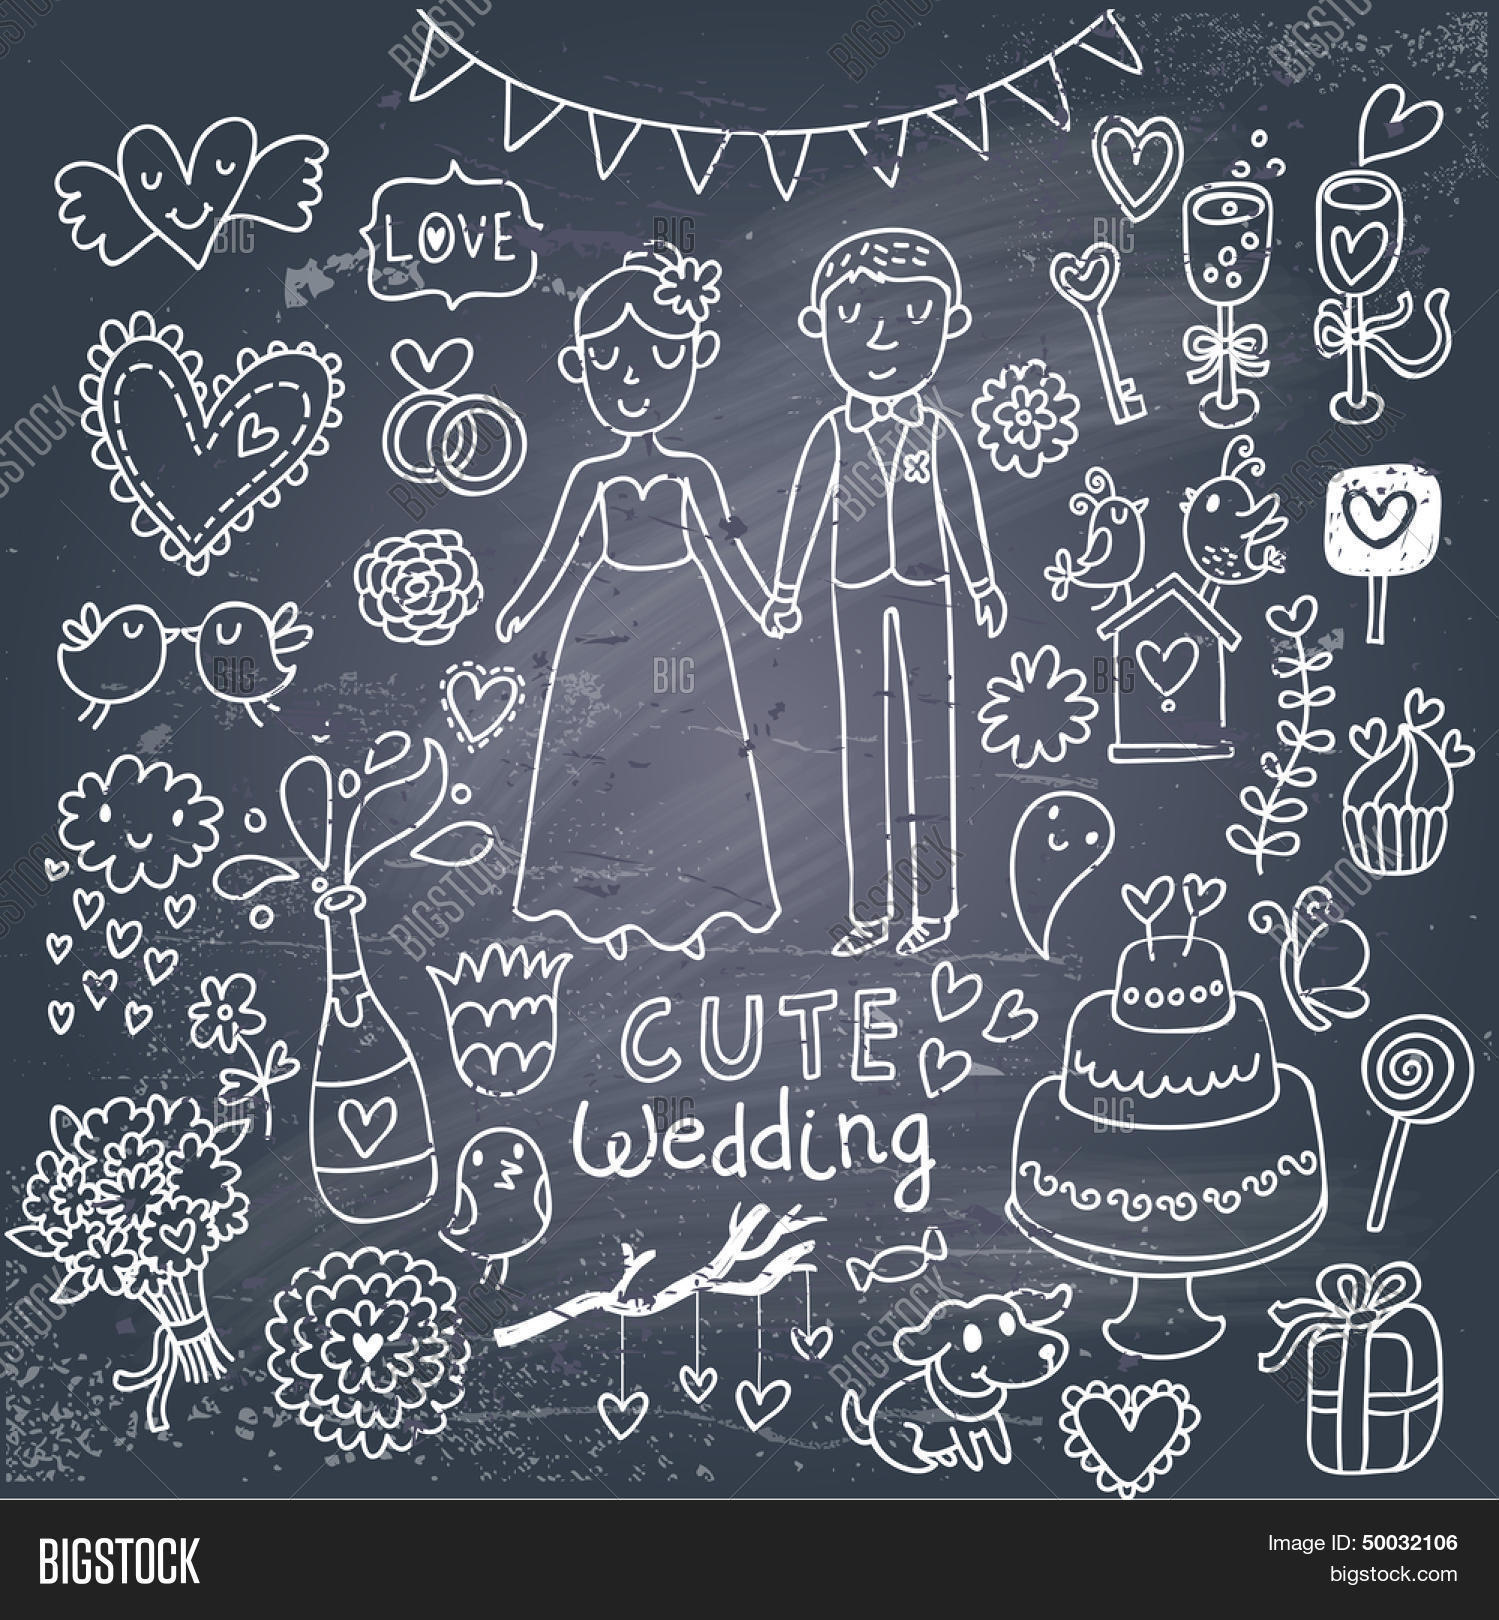 Vintage Wedding Set In Cartoon Style On Chalkboard Background Couple Of Lovers Birds: Drawn Chalkboard Wedding Ring At Reisefeber.org